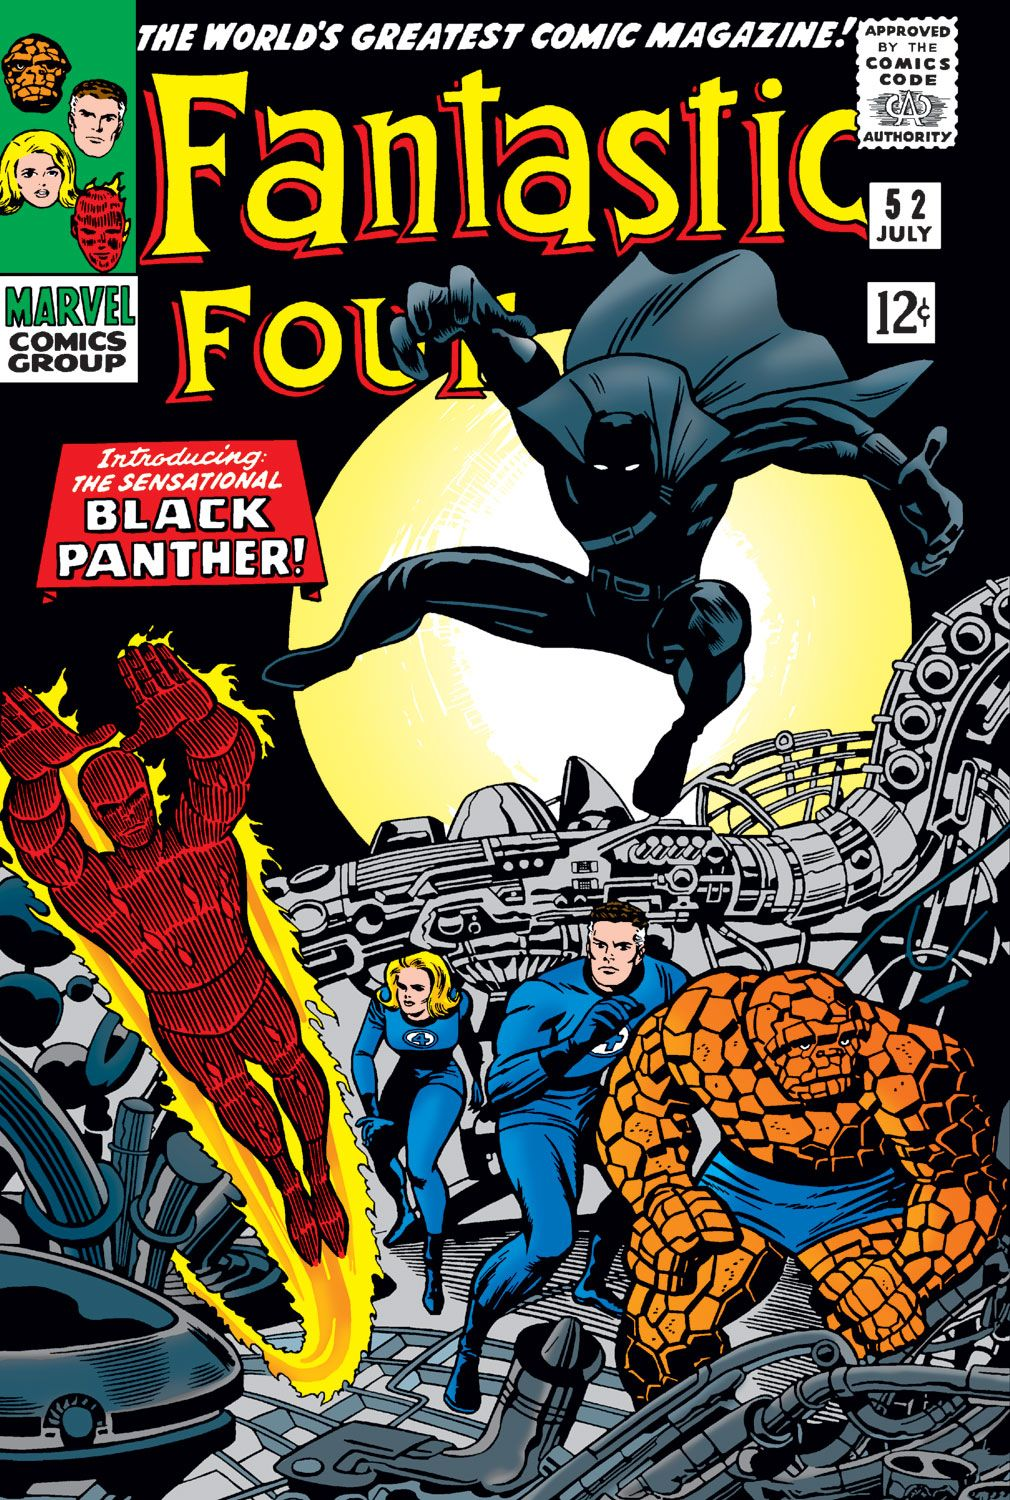 Black Panther made his first appearance on the pages of Fantastic Four.